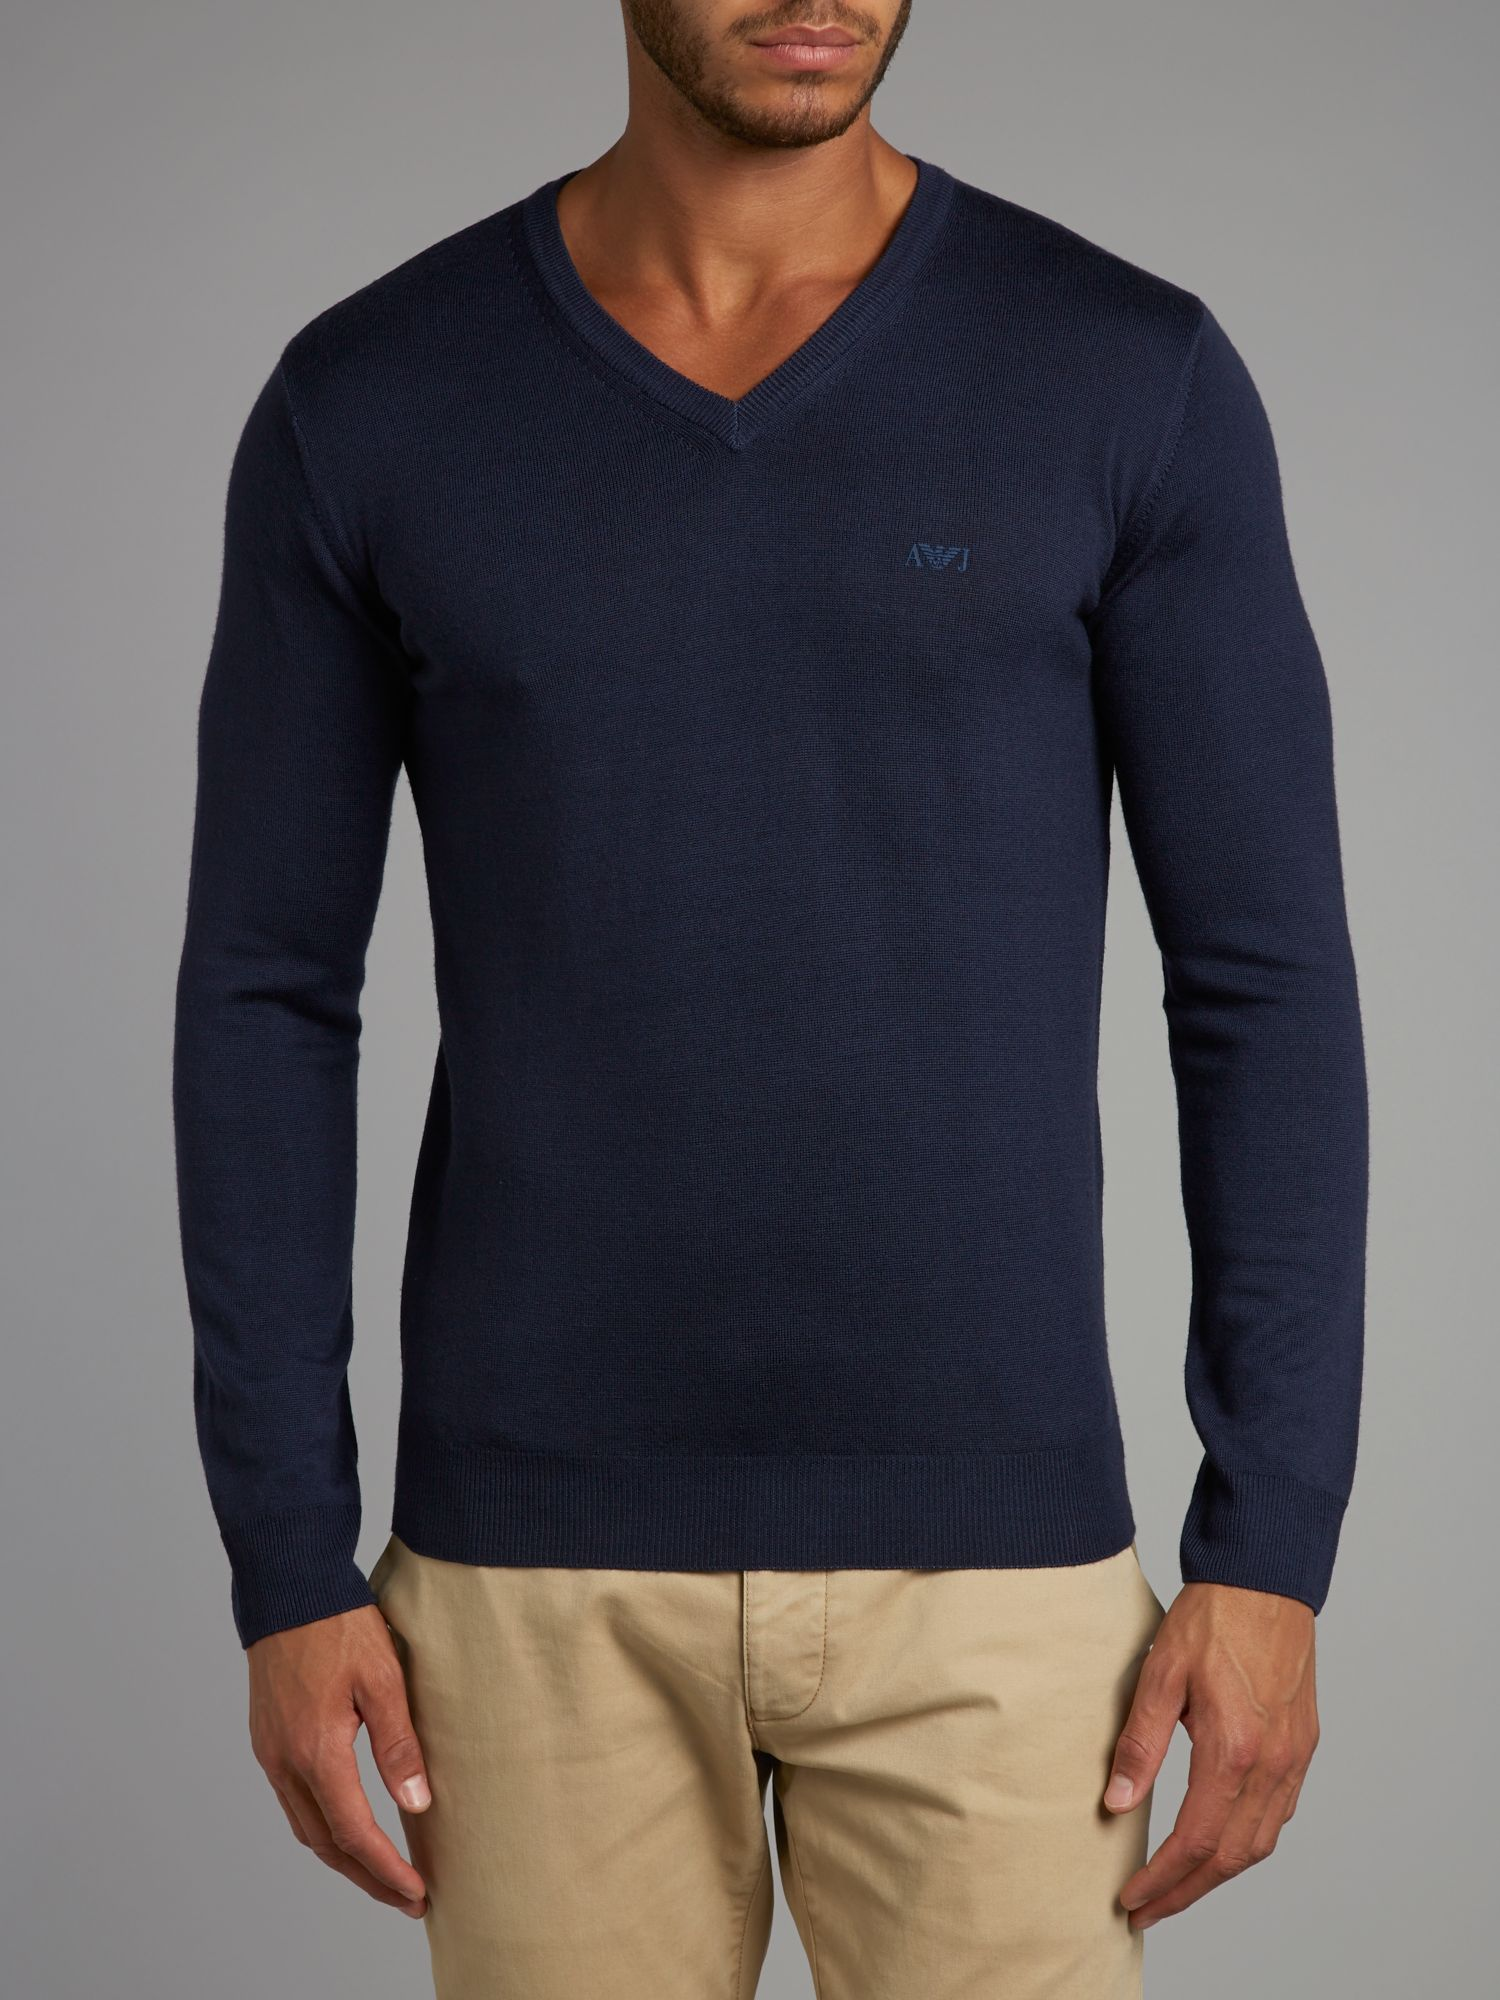 V neck wool knitwear